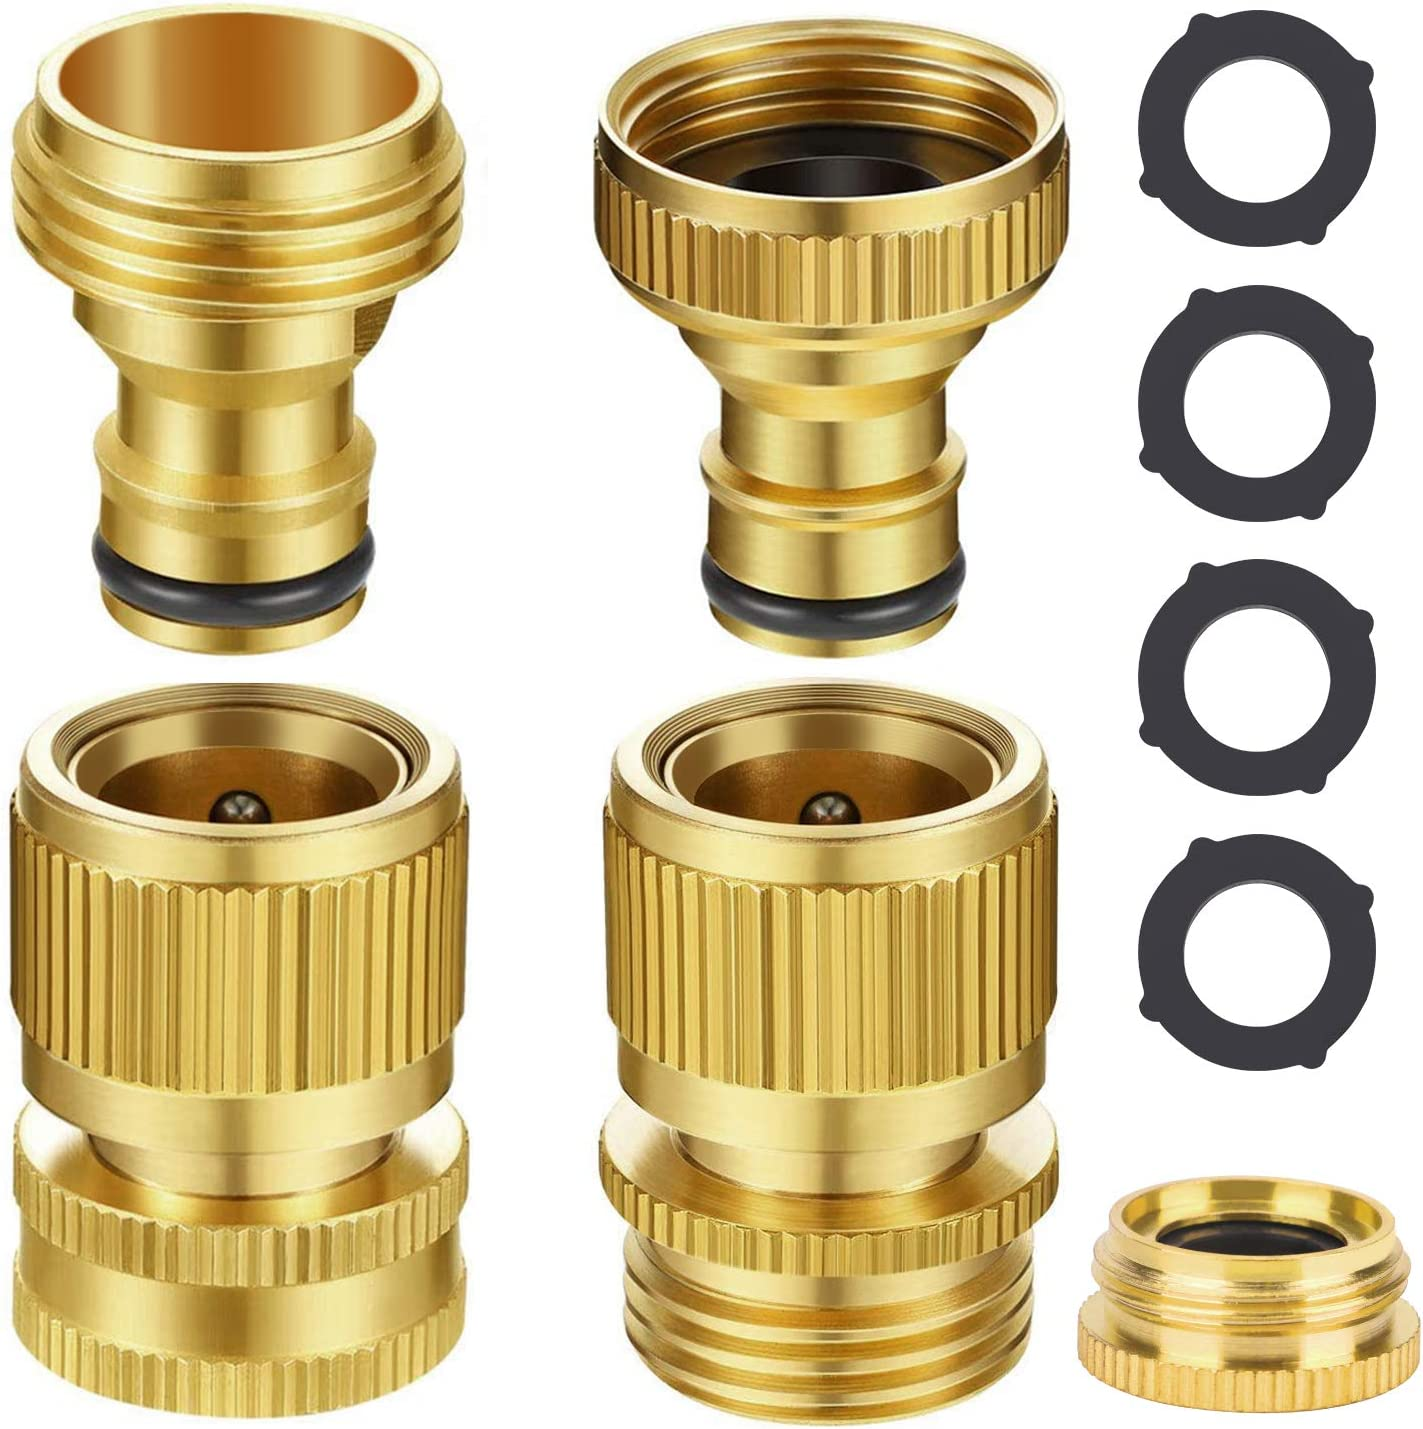 Essager Garden Hose Quick Connect, 3/4 Inch Solid Brass Female and Male Connectors to Brass Female and Male Nipples Garden Hose Fitting Water Hose Connectors